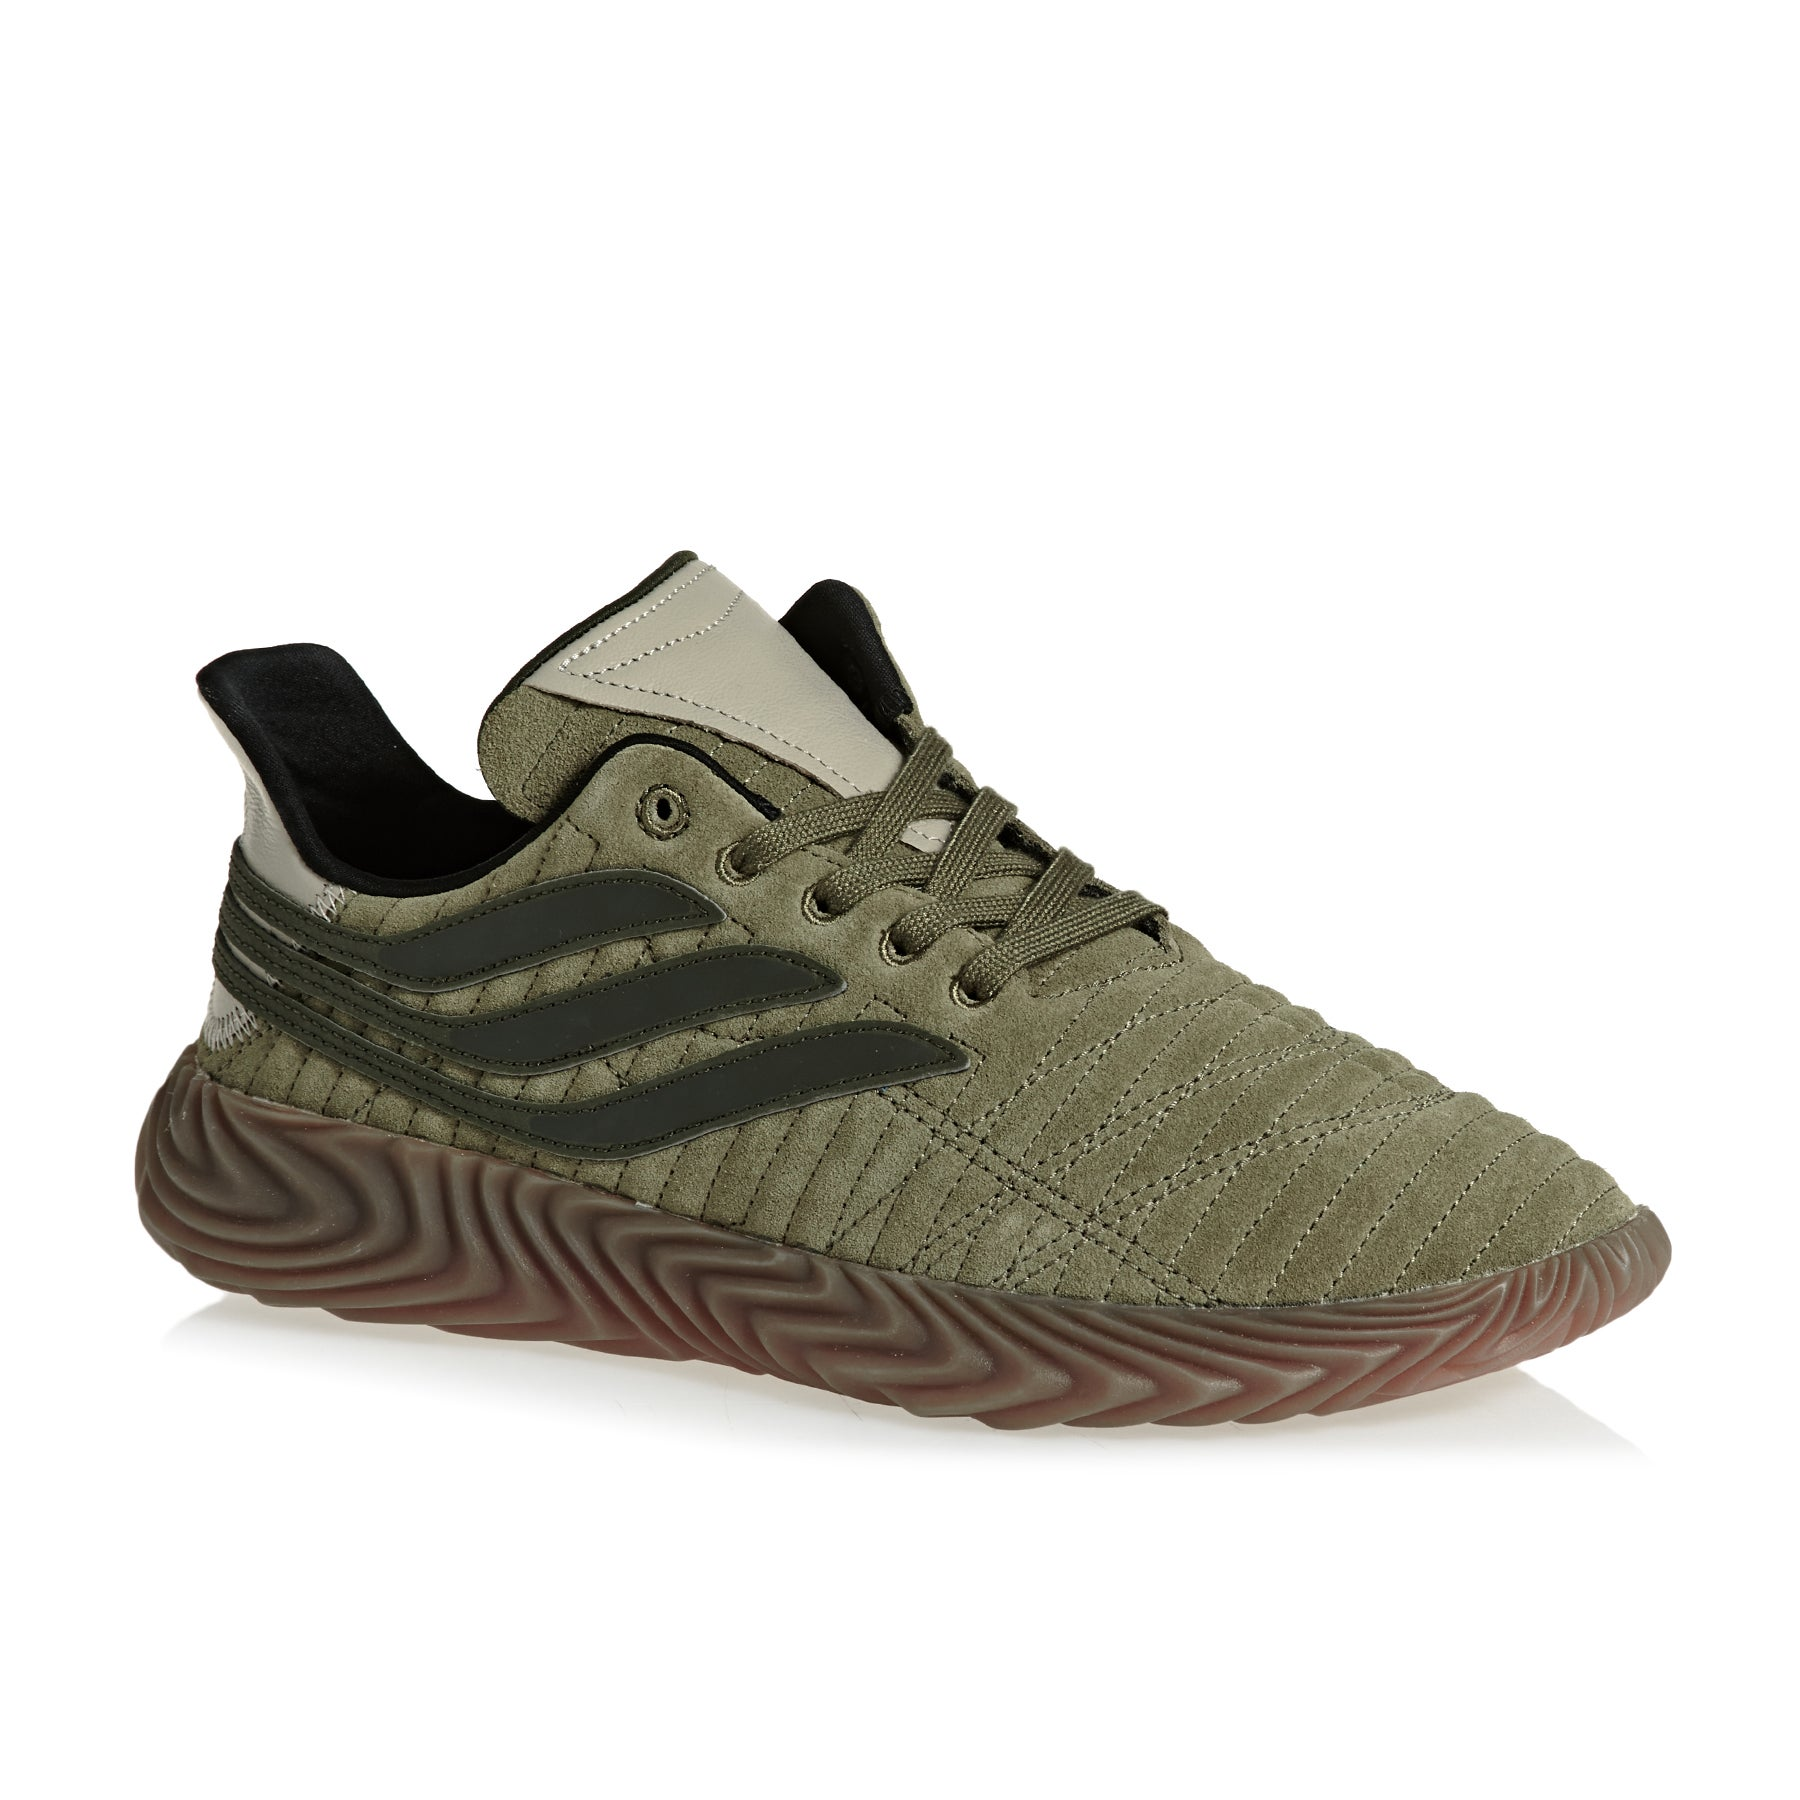 Adidas Originals Sobakov Shoes available from Surfdome 34f1aee9b7c9